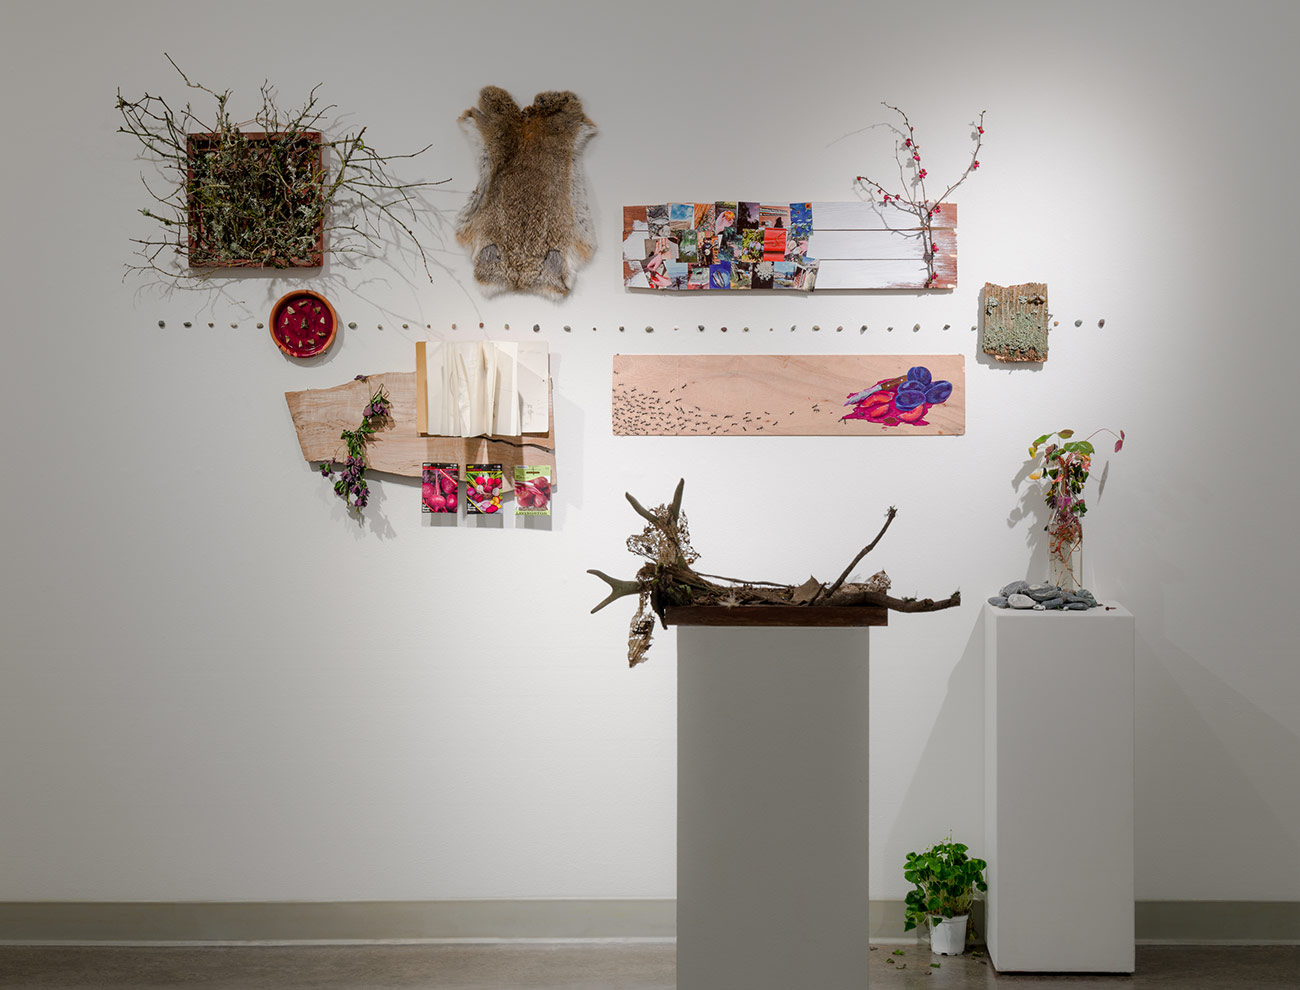 Photograph of work by Maggie Brown installed in the Vachon Gallery